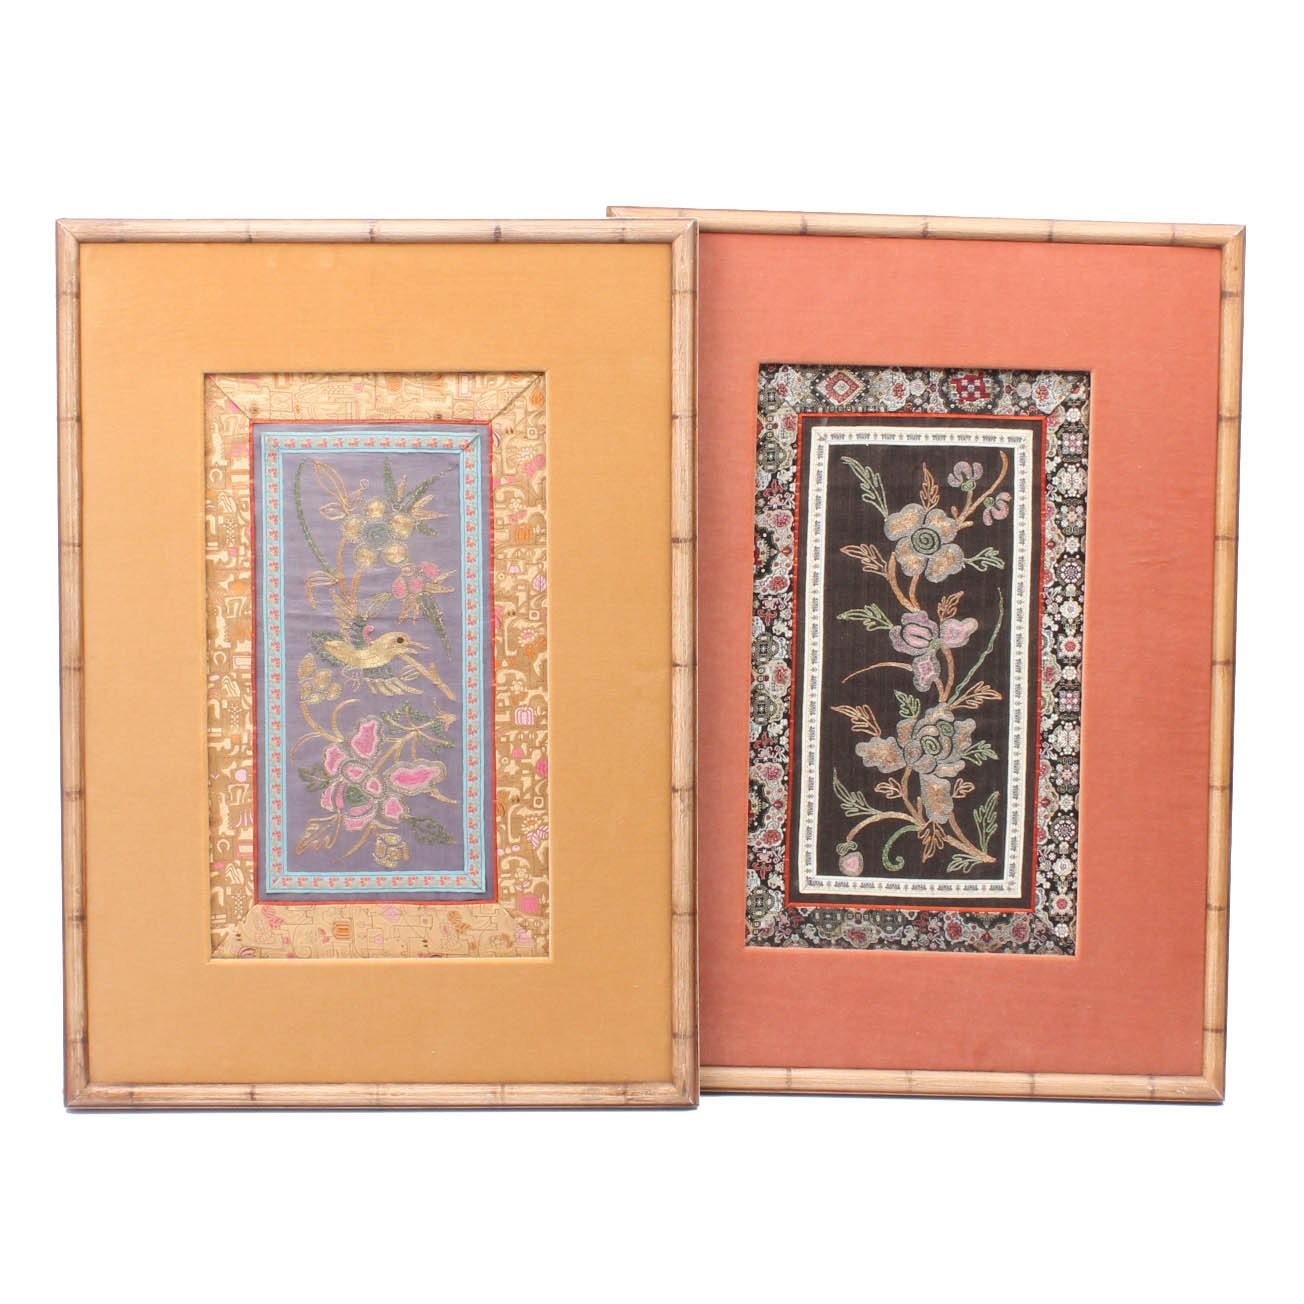 Pair of Antique Chinese Flower and Bird Embroidered Panels